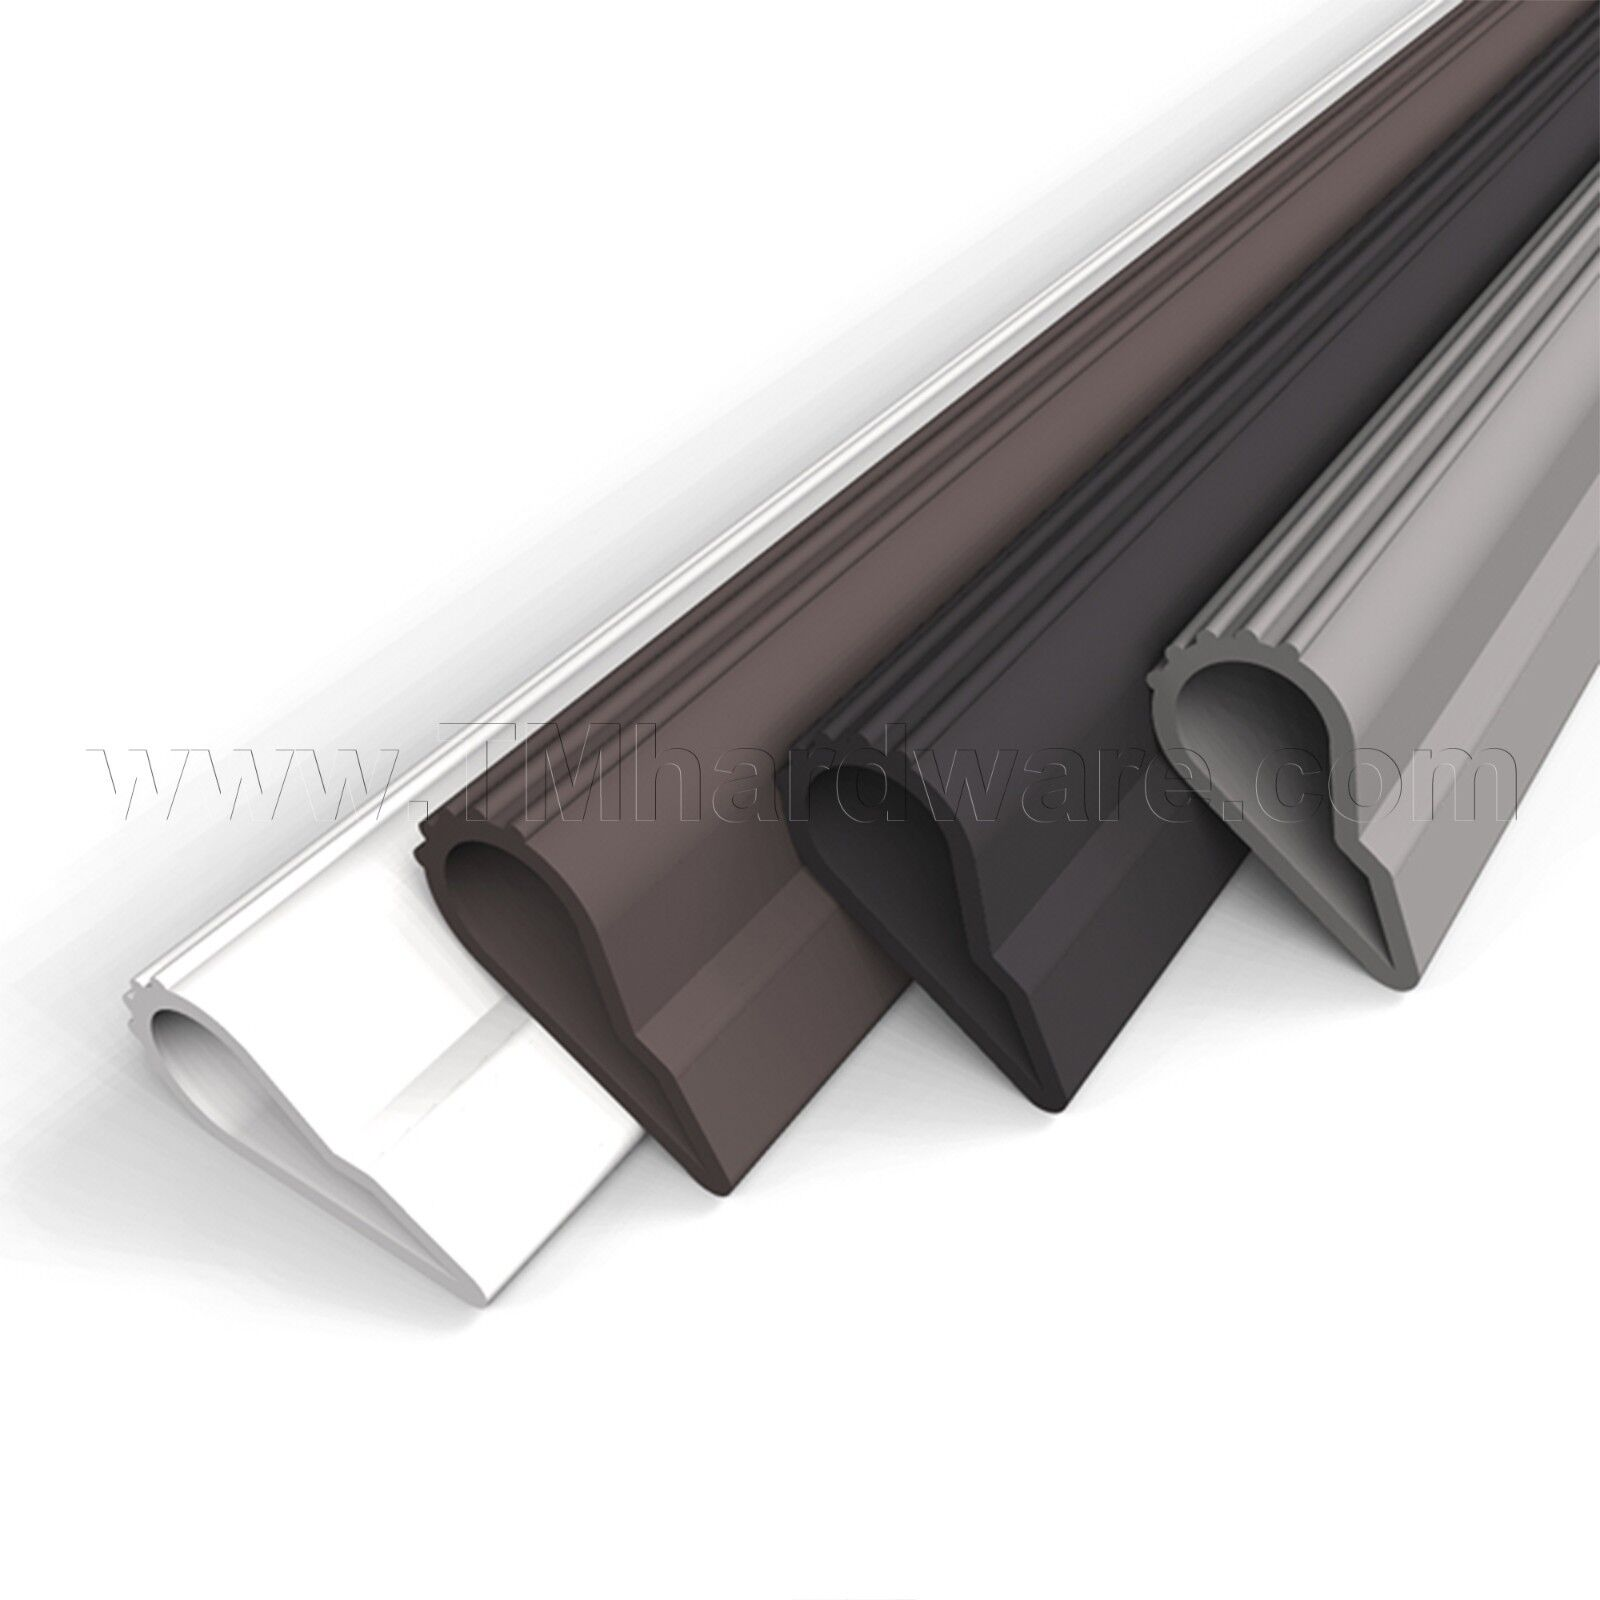 Door Seal - Self Adhesive Silicone Weatherstripping Soundproofing